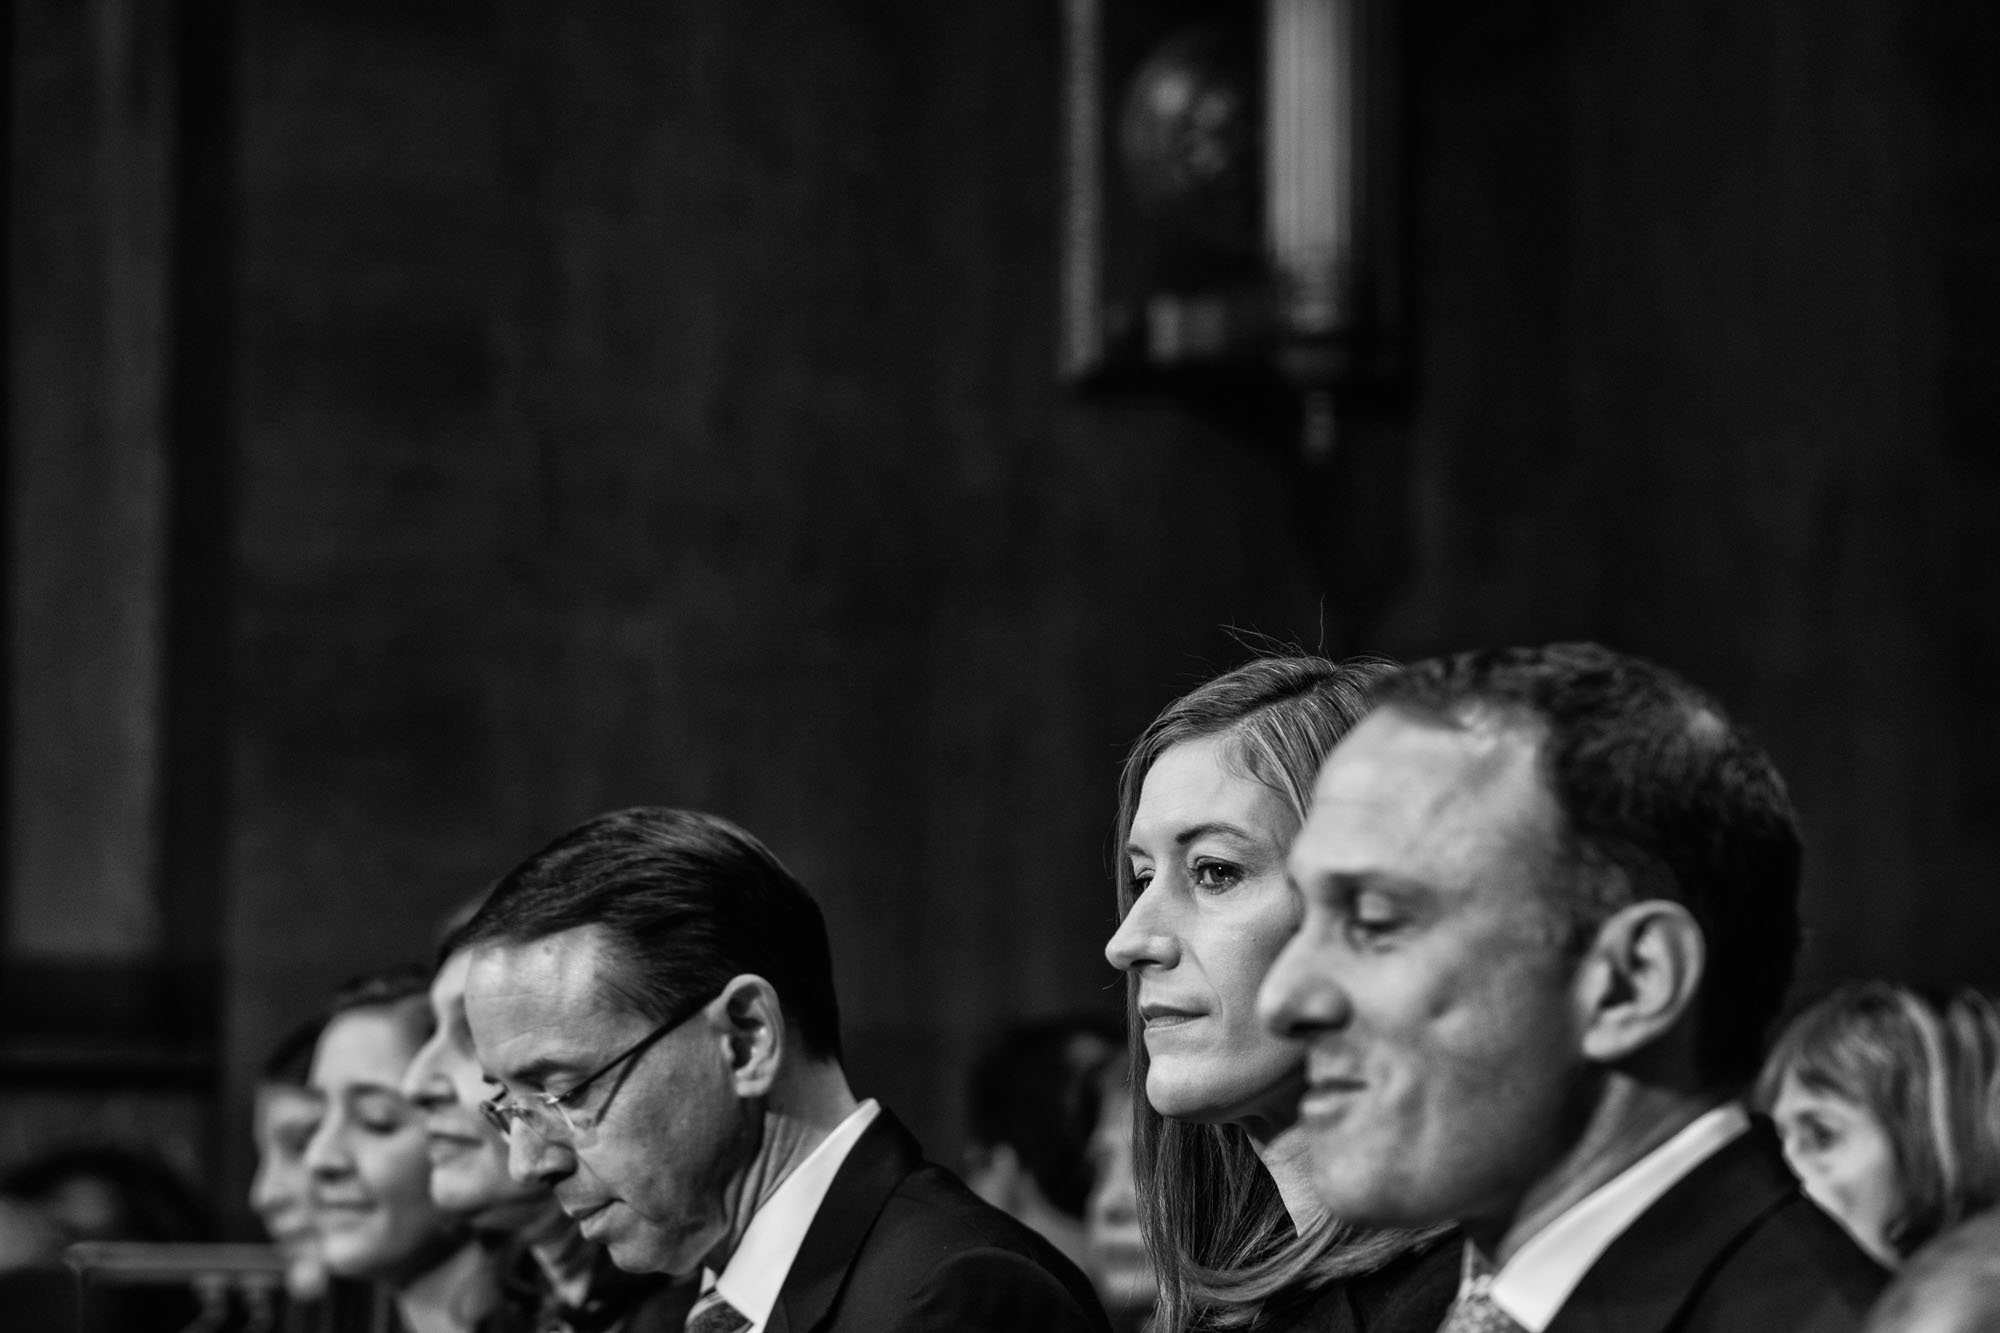 Rachel Brand testifies before the U.S. Senate Judiciary Committee on a hearing considering her to be Associate Attorney General, on March 7, 2017.